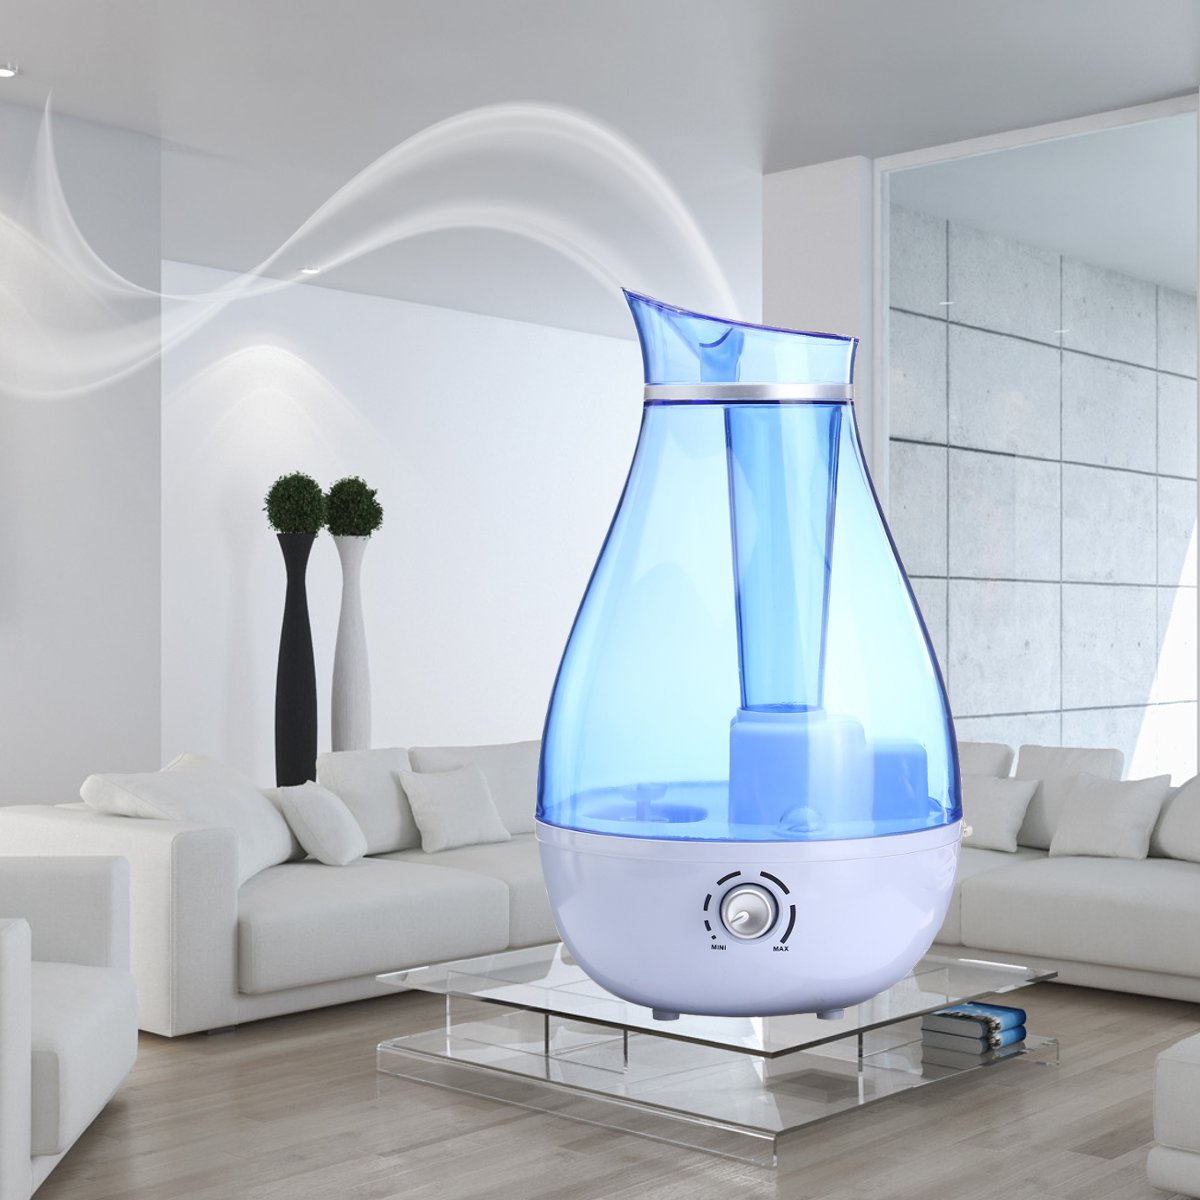 2.5L Large Capacity Ultrasonic Humidifier Electric Air Purifier With Auto Power Off Potection Mist Maker With Adjustable Mist Amount